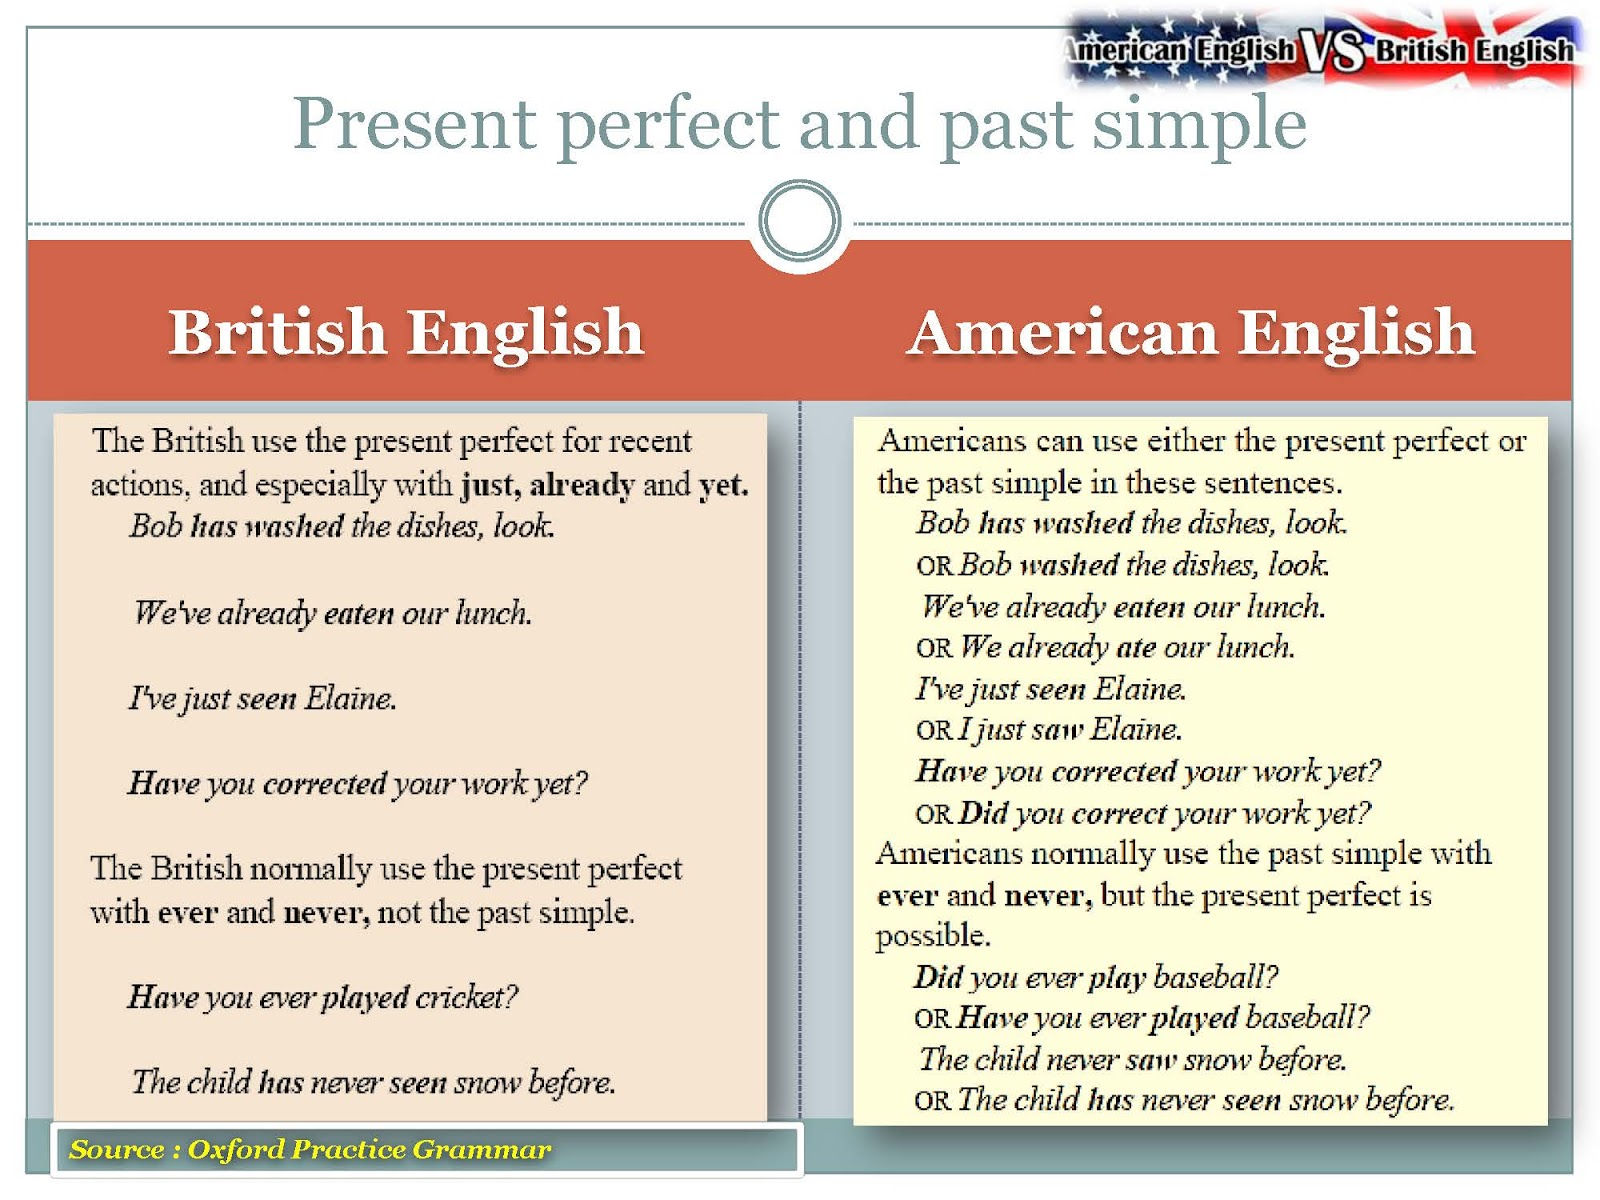 british american essay Phonological comparison of british and american english essay phonological comparison of british and american english get your custom essay sample.